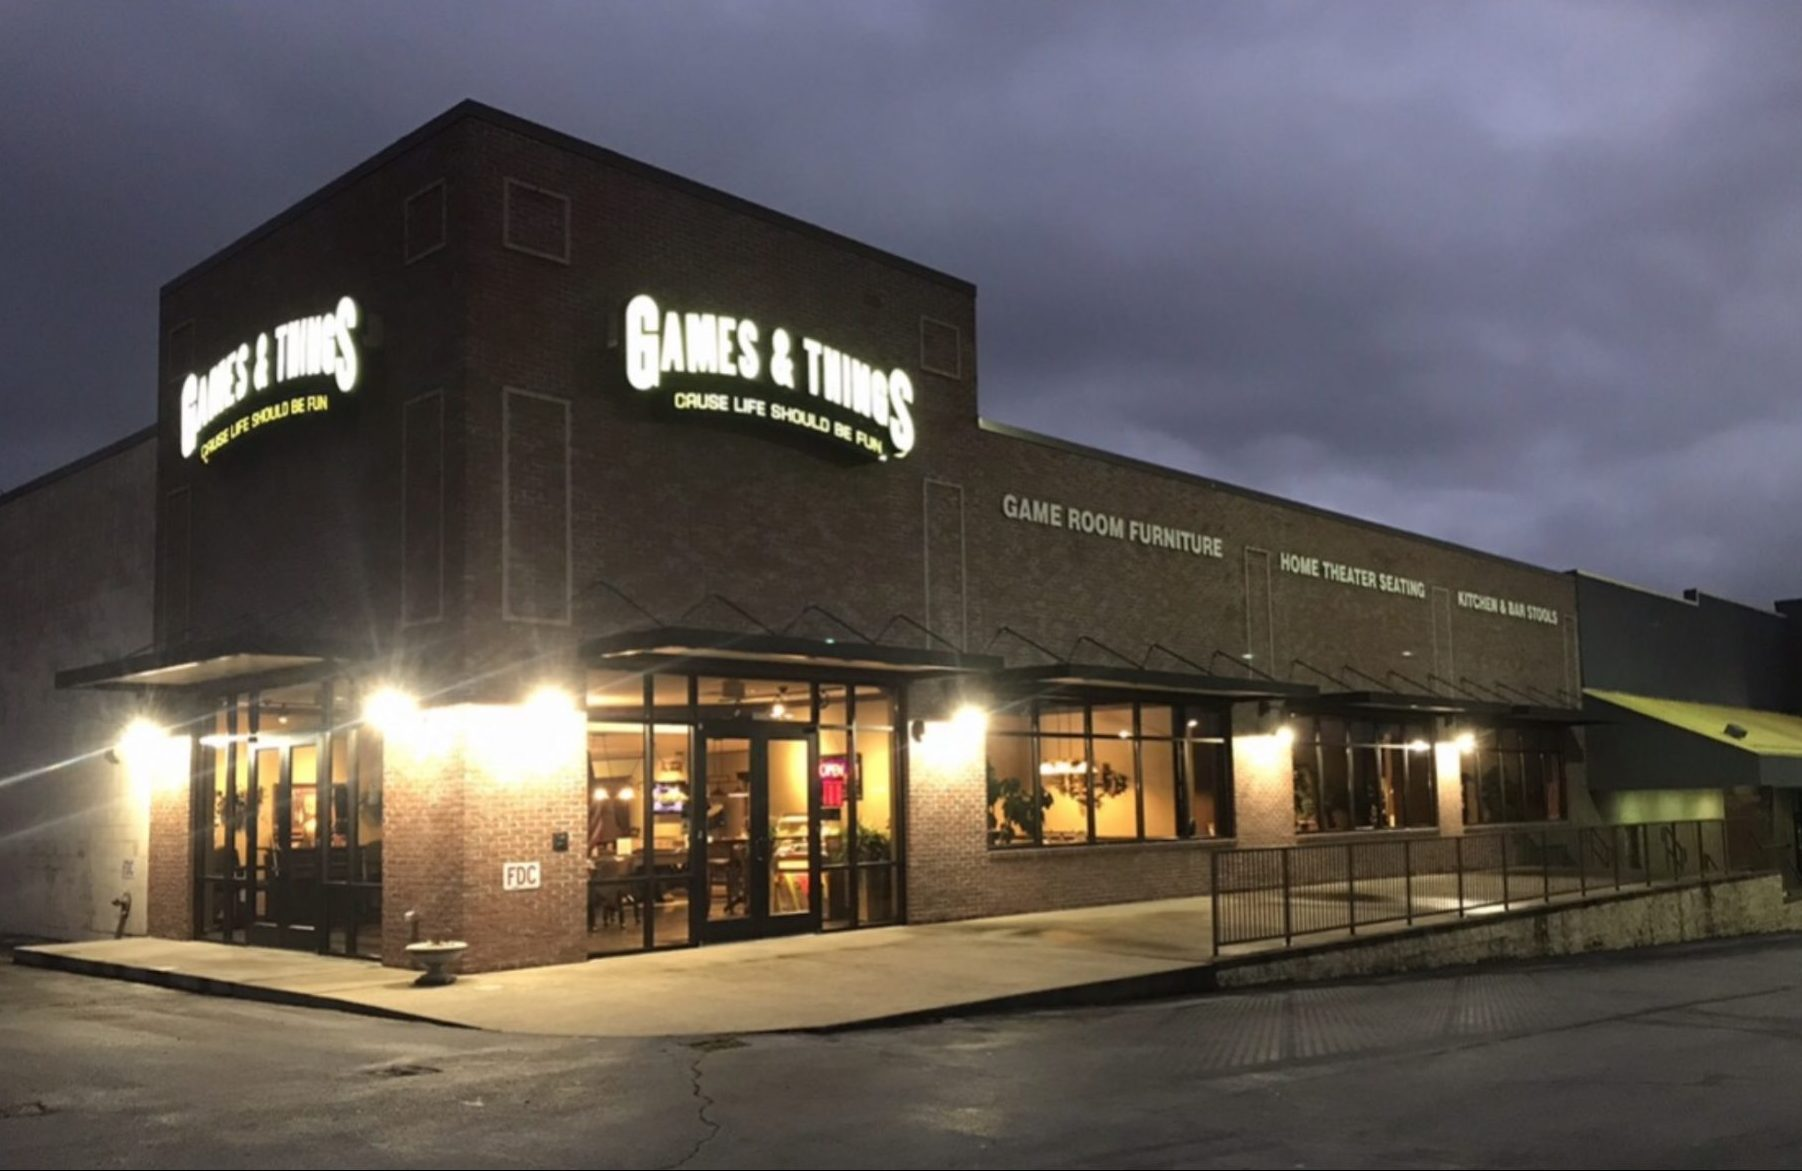 Exterior shot of Games & Things in Knoxville